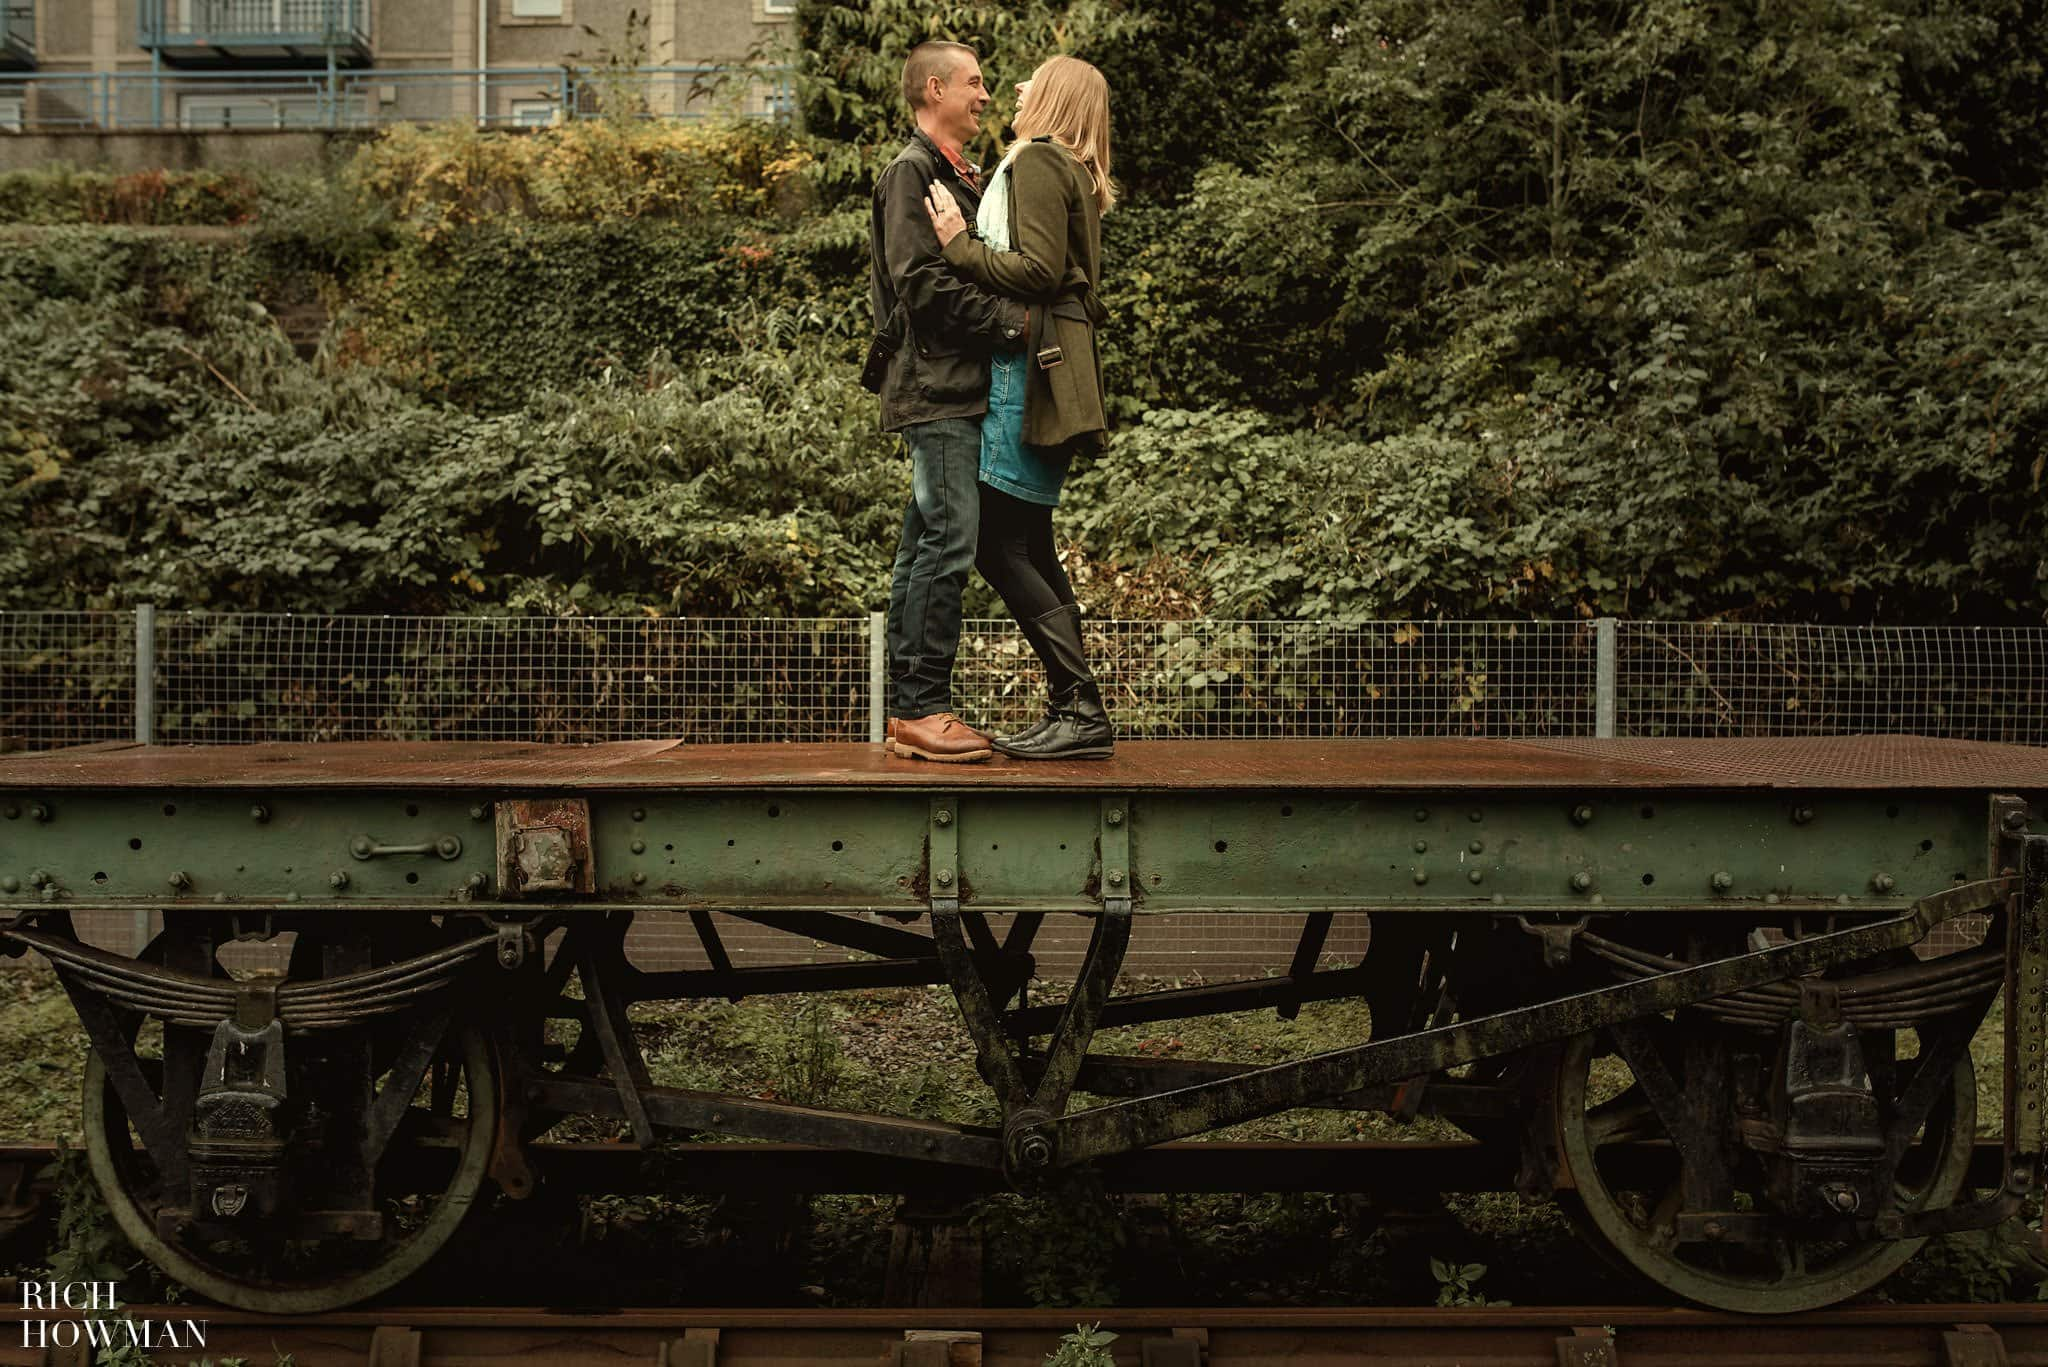 Engagement photographer in Bristol Rich Howman